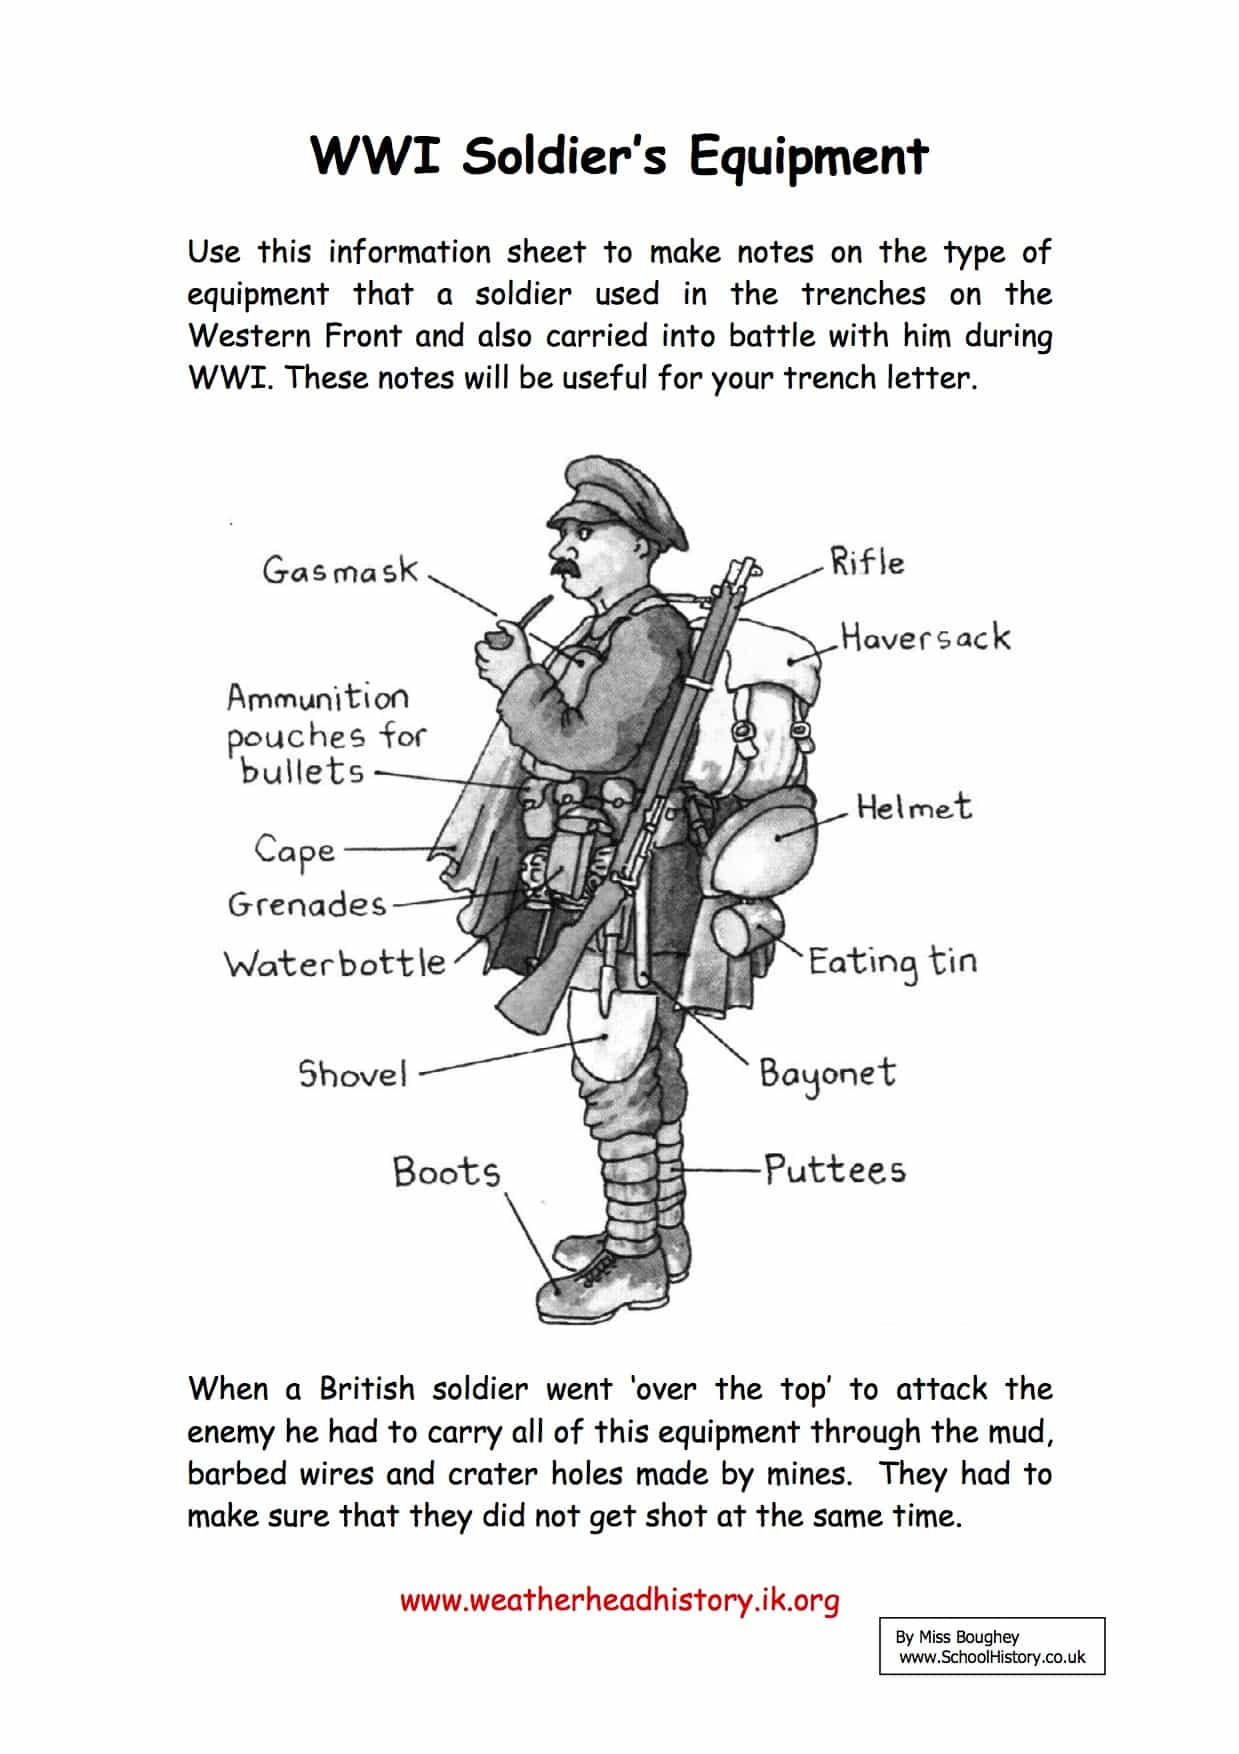 a ww1 soldier u2019s equipment facts  u0026 information worksheet